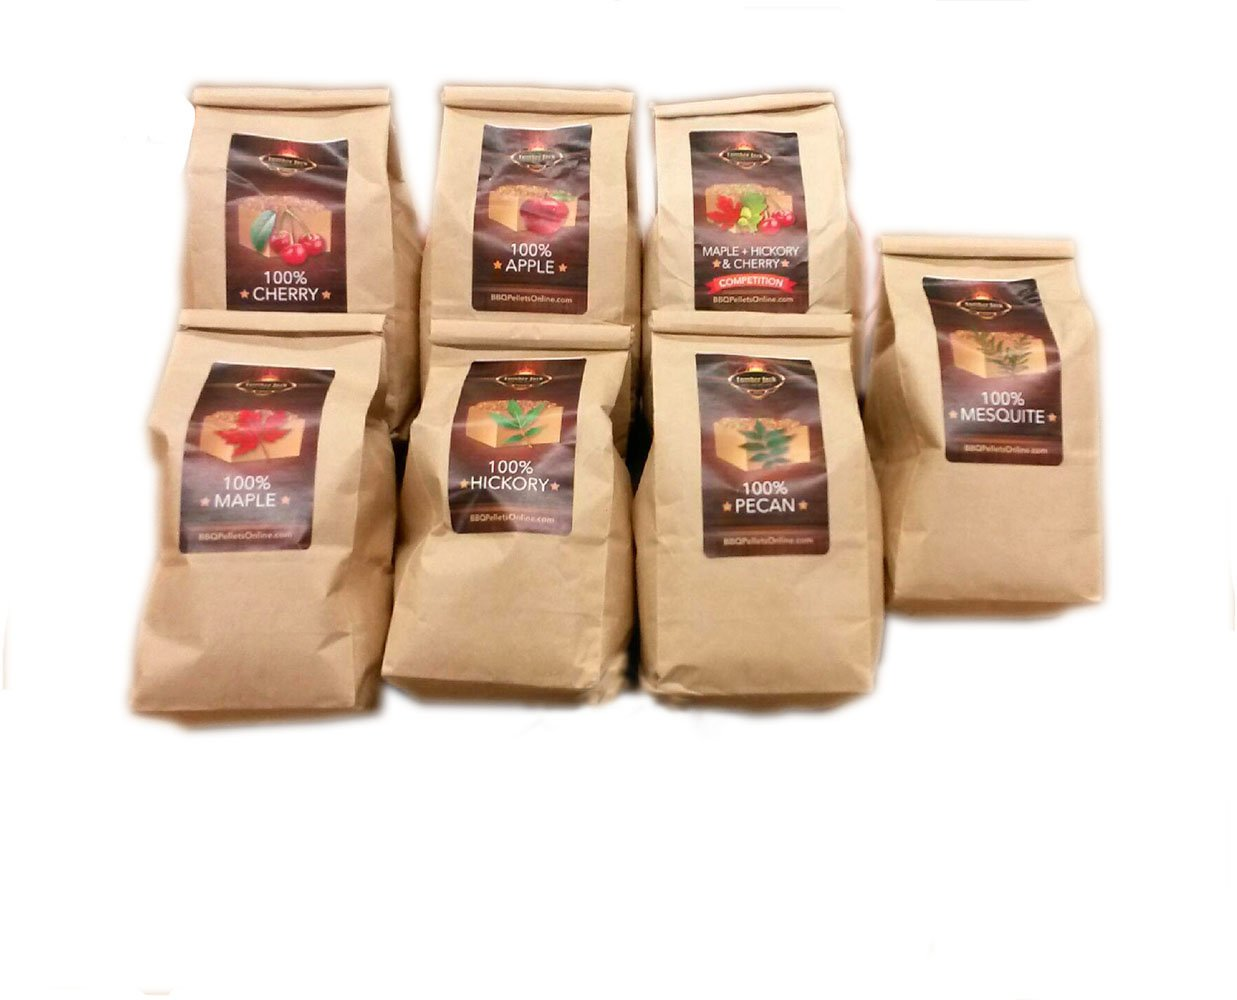 Lumber Jack BBQ 7 varieties BBQ Pellet Pack - 1 Lb. Bag - 100% (Apple, Cherry, Pecan, Hickory, Maple-Hickory-Cherry, Mesquite and Maple) - Shipped Priority Mail if Qty 1